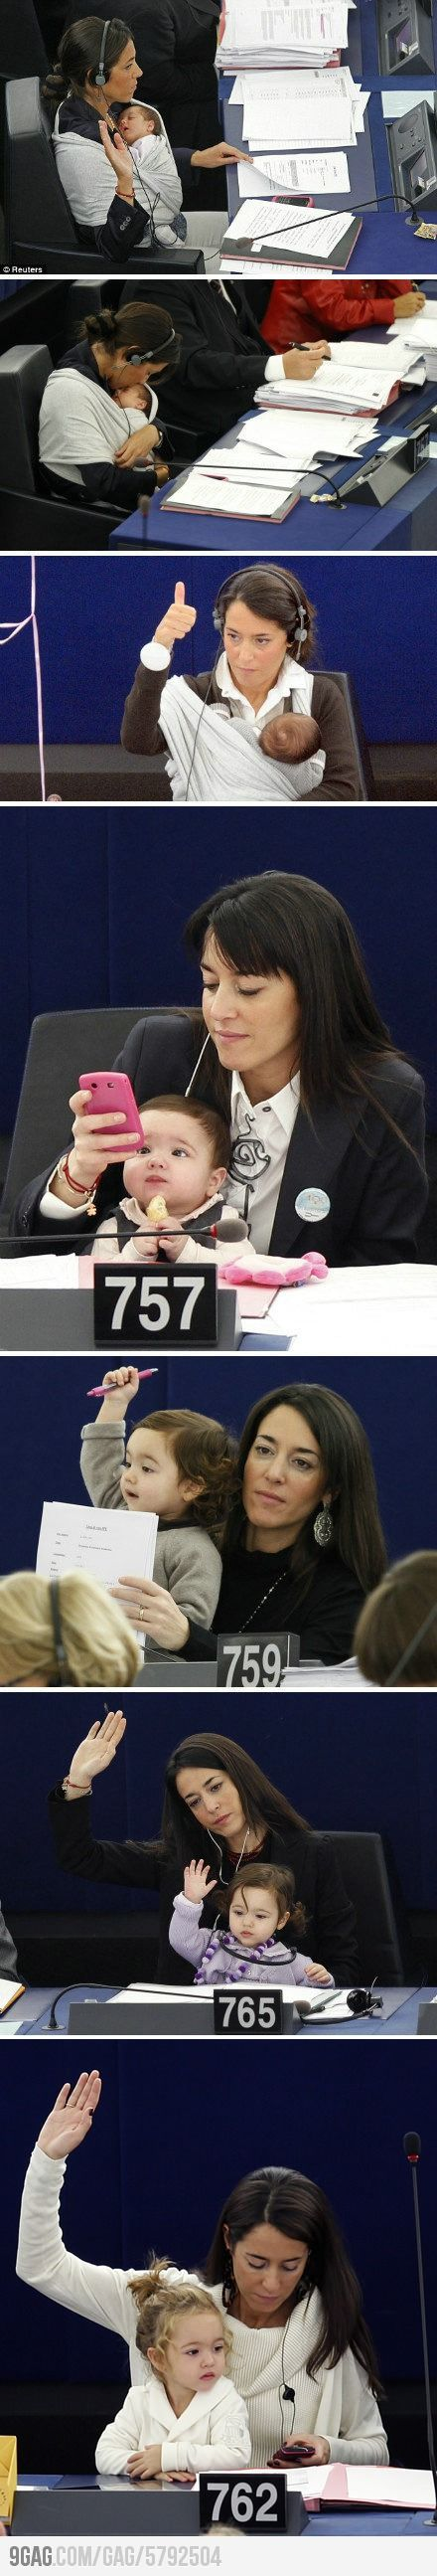 """""""On 22 September 2010 Licia Ronzulli took her daughter, Vittoria, then only 44 days old, to a plenary session of the European Parliament as a symbolic gesture to reclaim more rights for women in reconciling work and family life."""" -Wiki"""